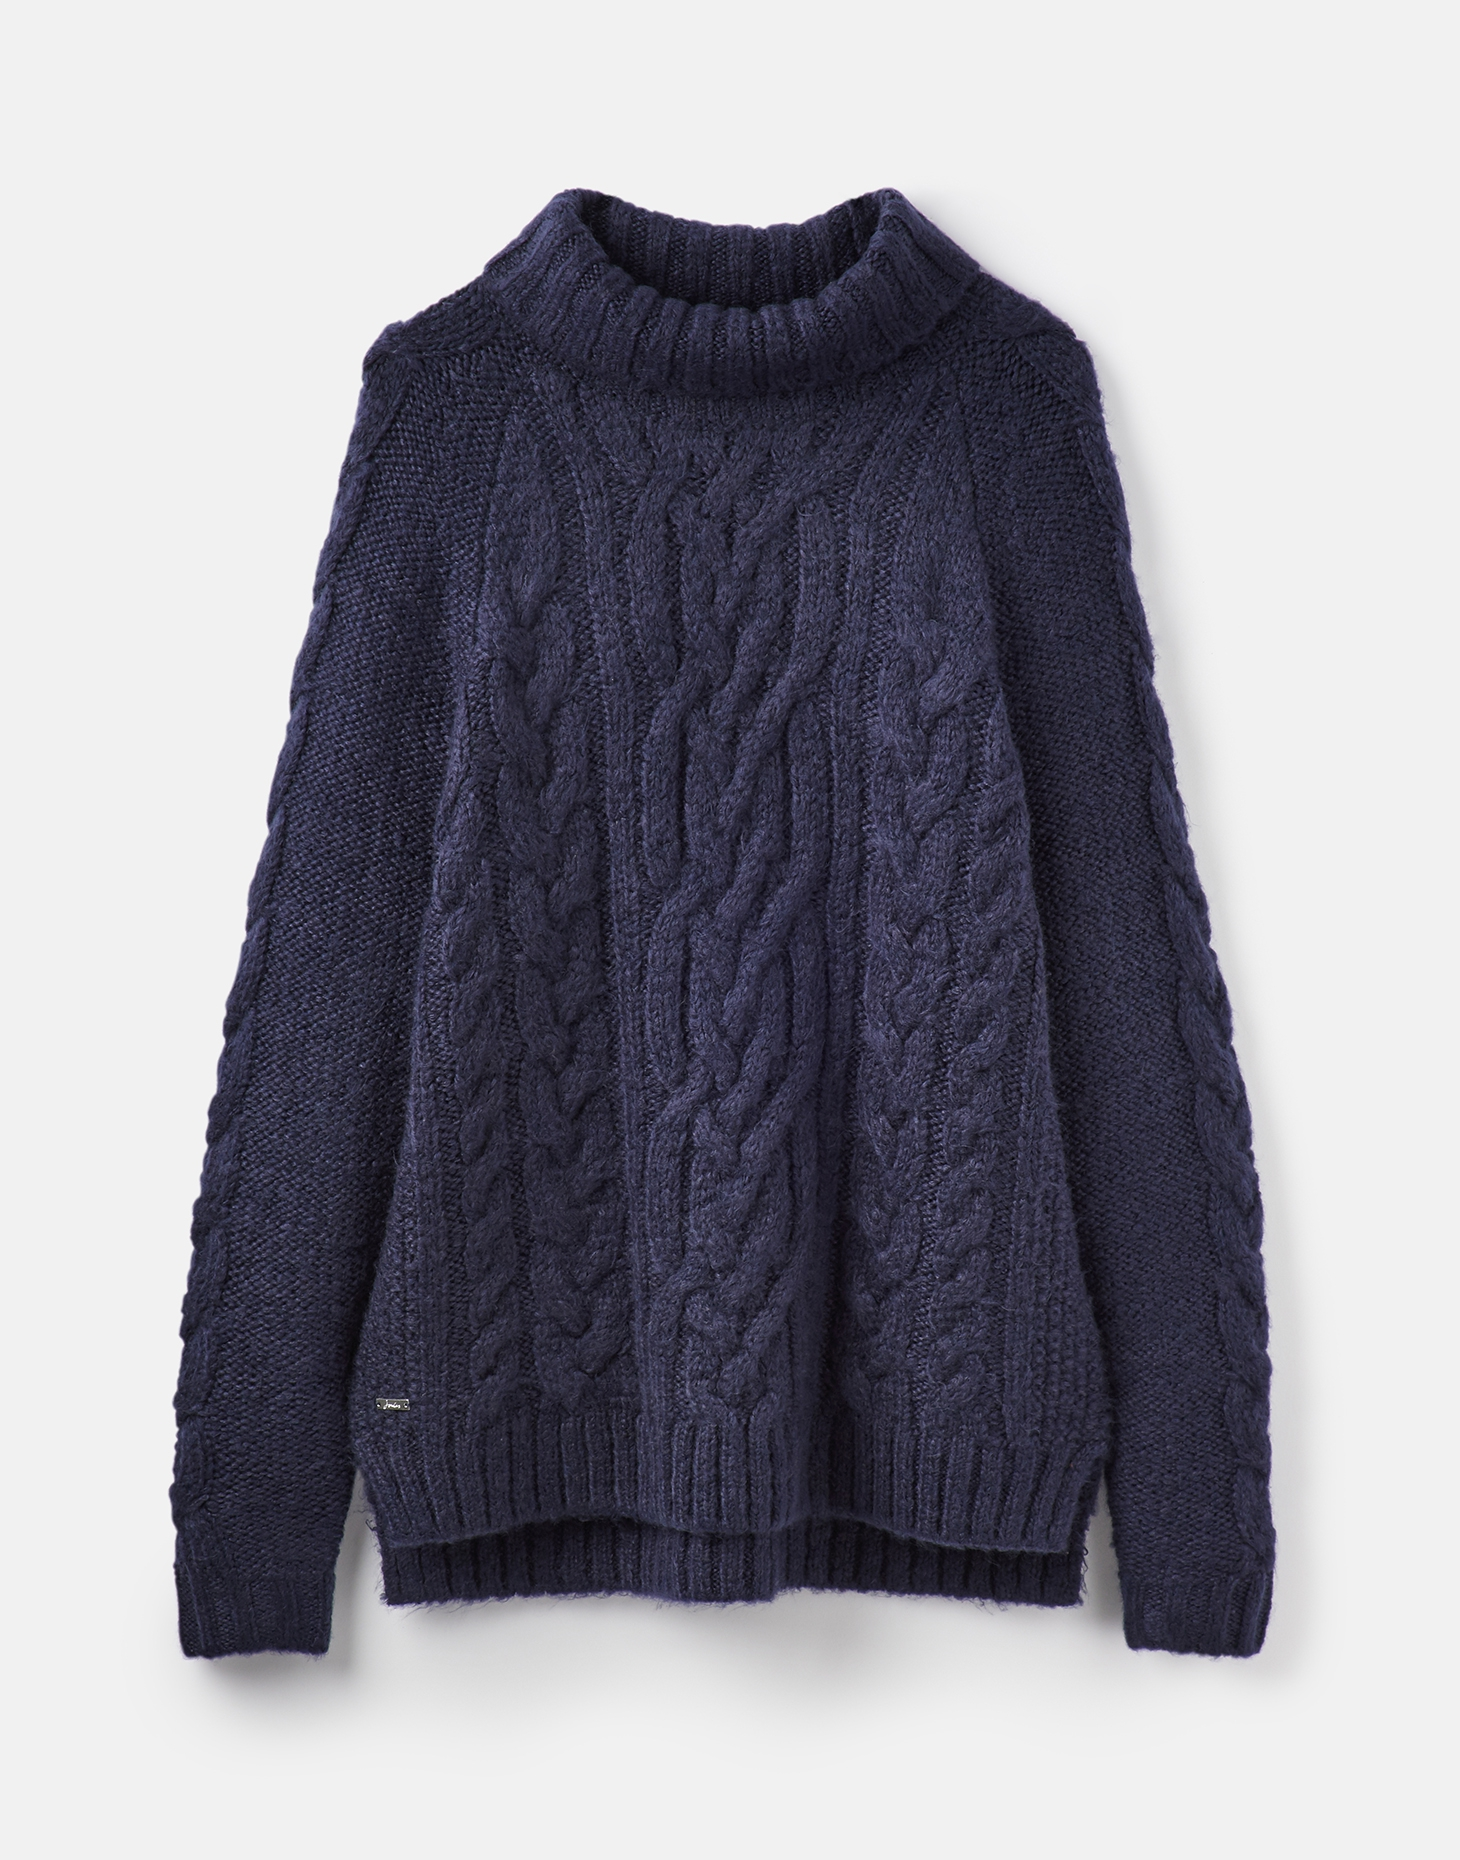 88337b1ef9d Details about Joules Womens Jessie Cosy Cable Jumper 14 in FRENCH NAVY Size  14